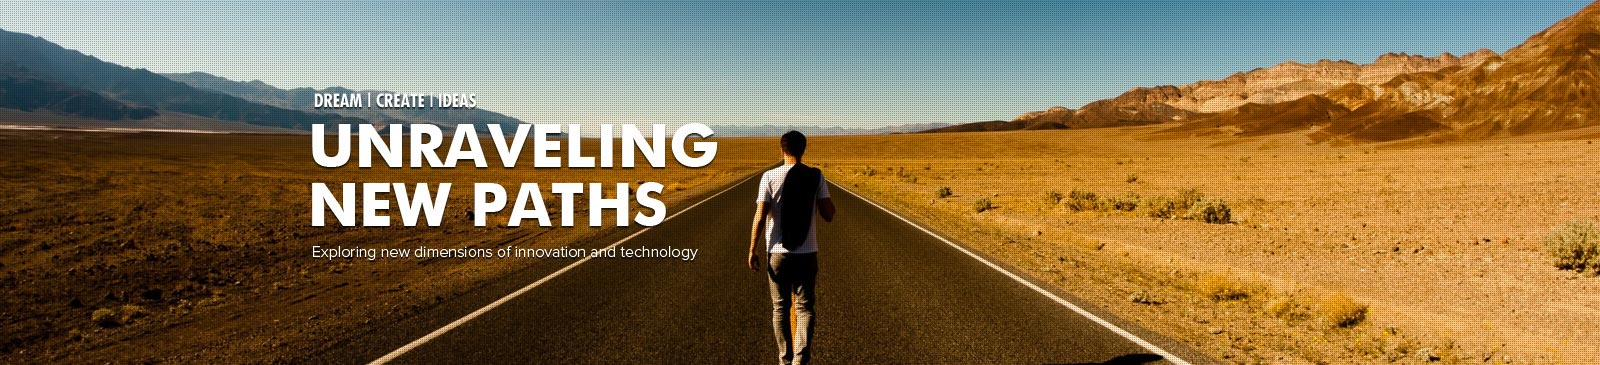 Unraveling new paths-dottechnologies